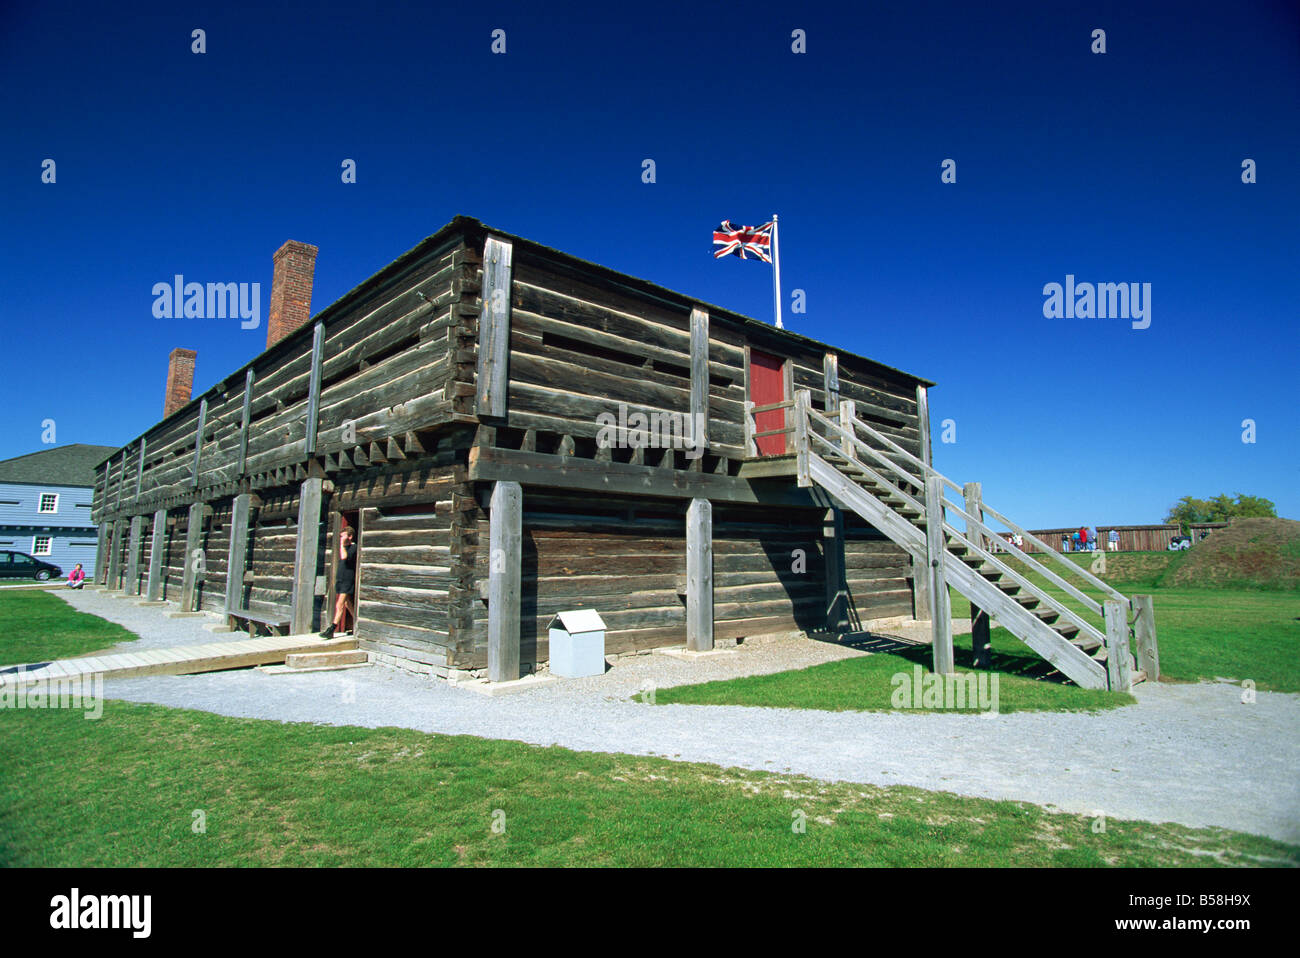 Fort George, a restored British fort dating from 1797, near Niagara-on-the-Lake, Ontario, Canada, North America - Stock Image